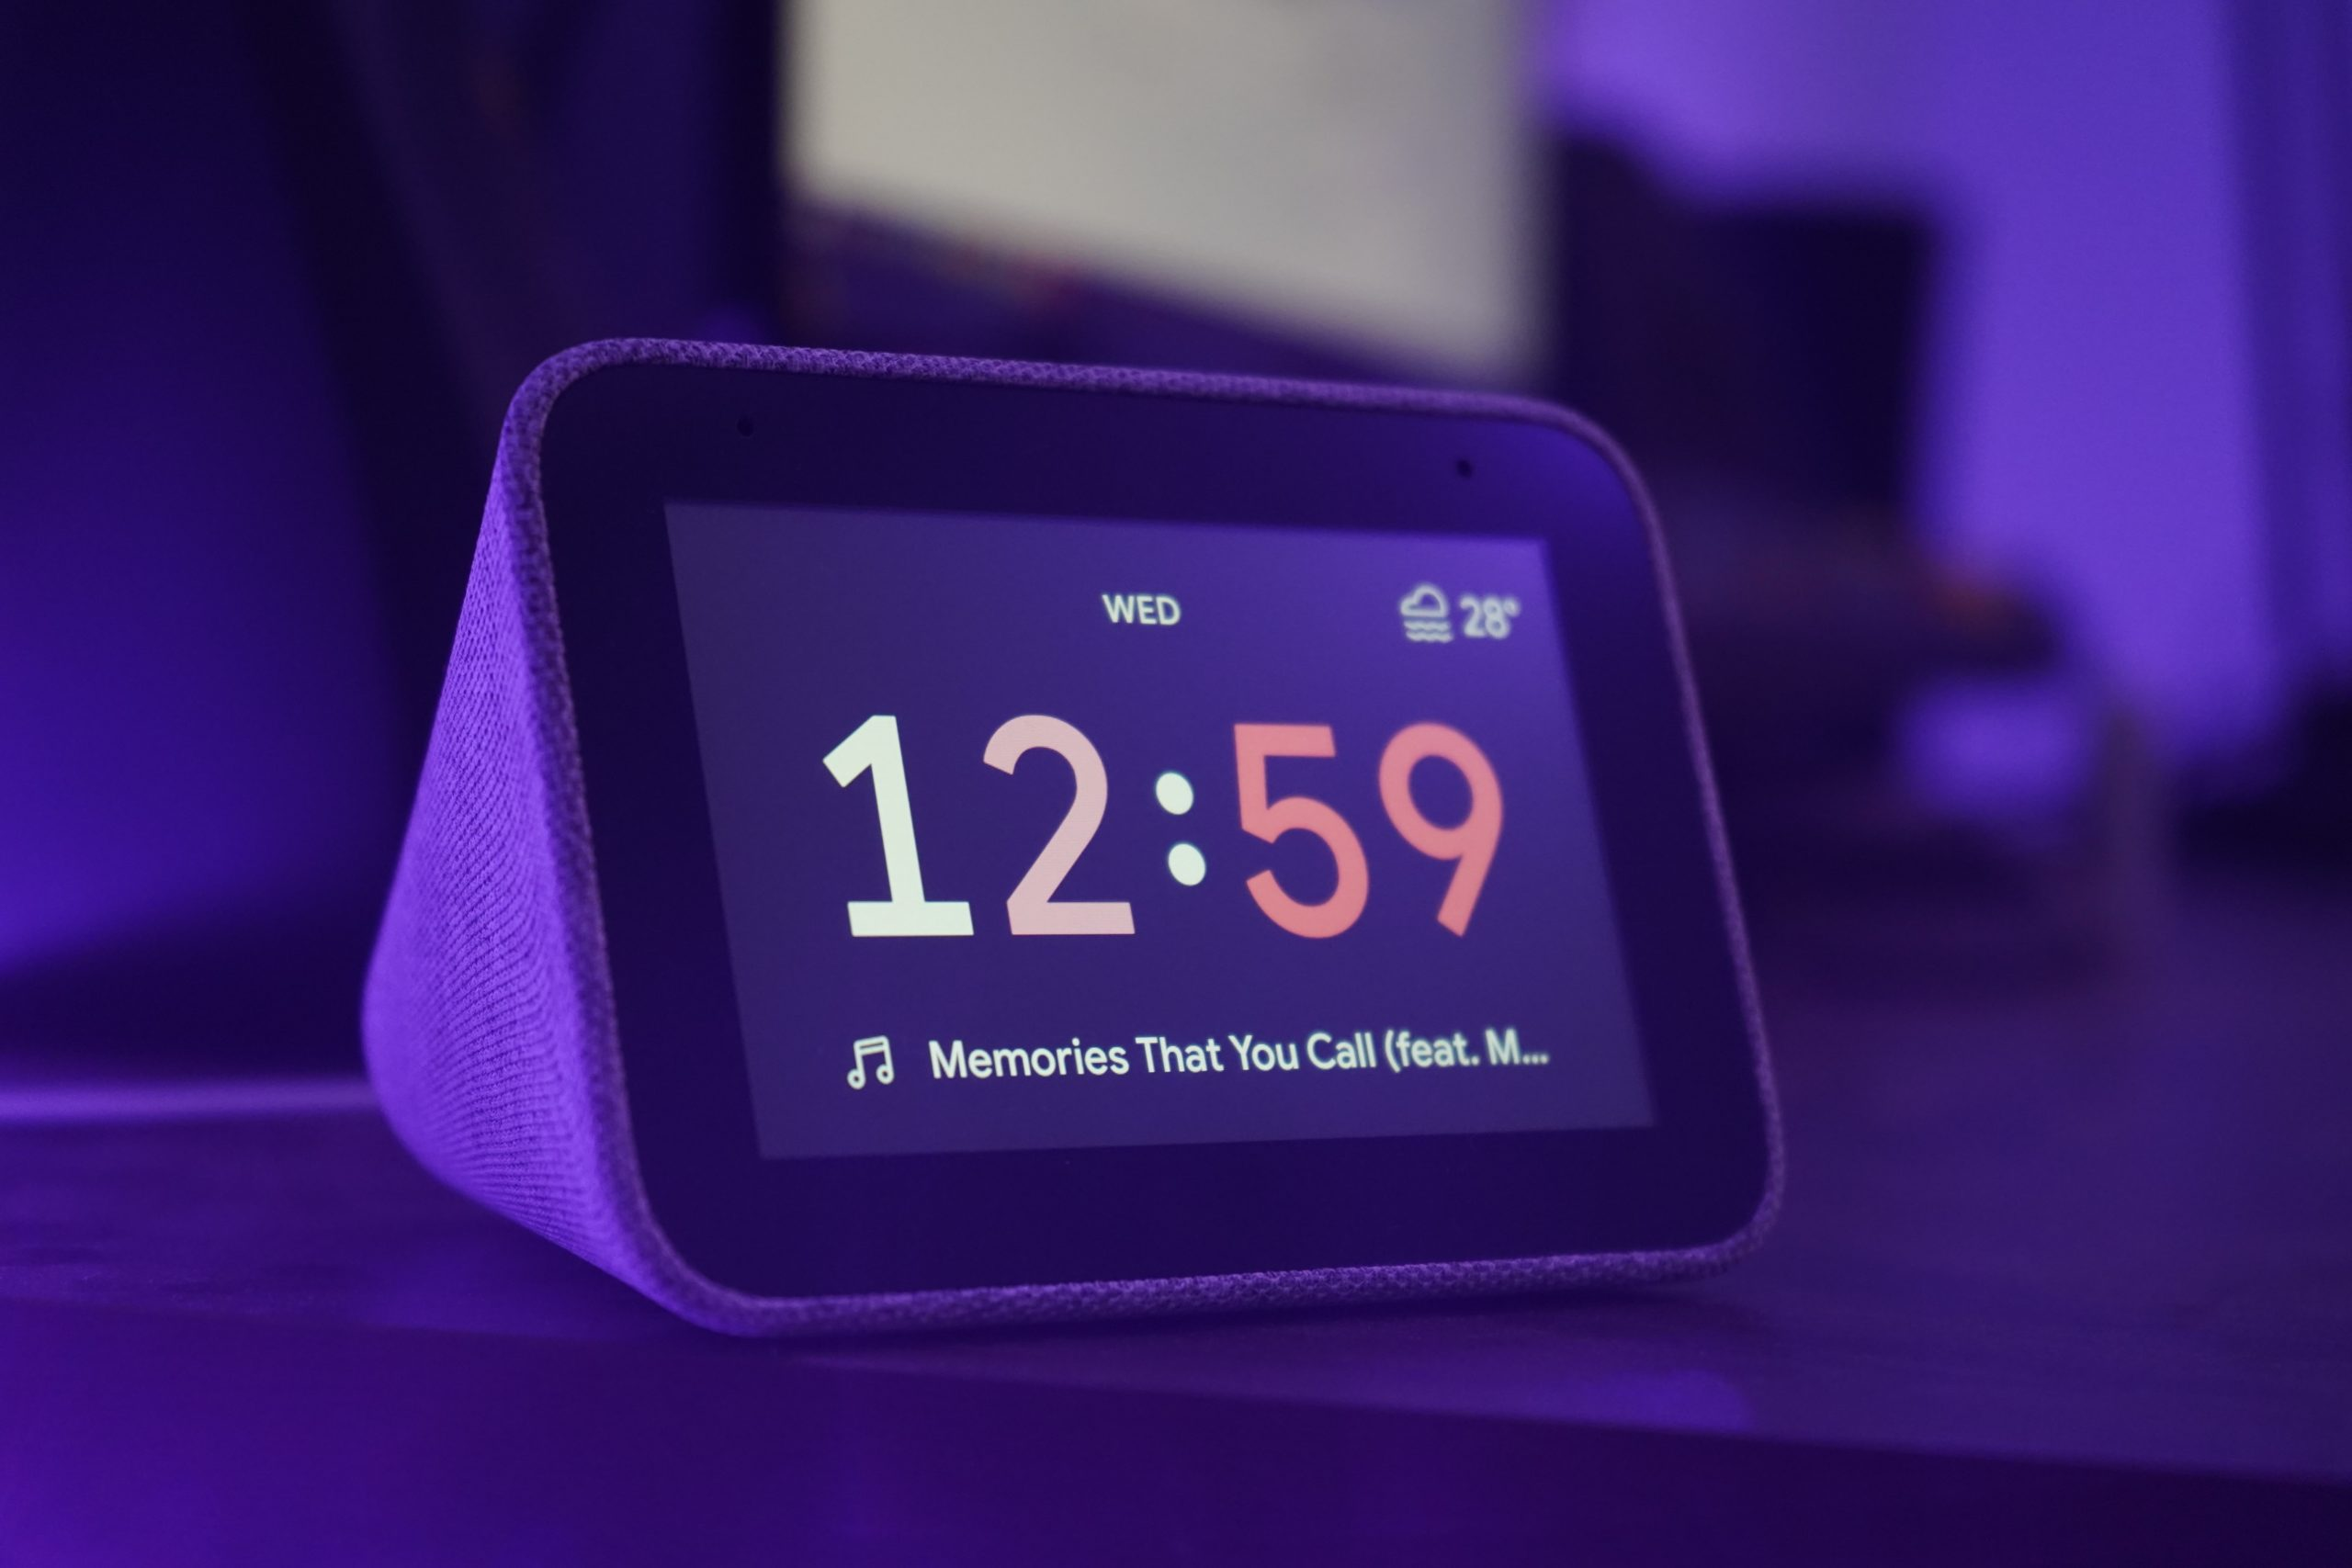 The Famous Digital Wall Clock Designs- A Brief Overview